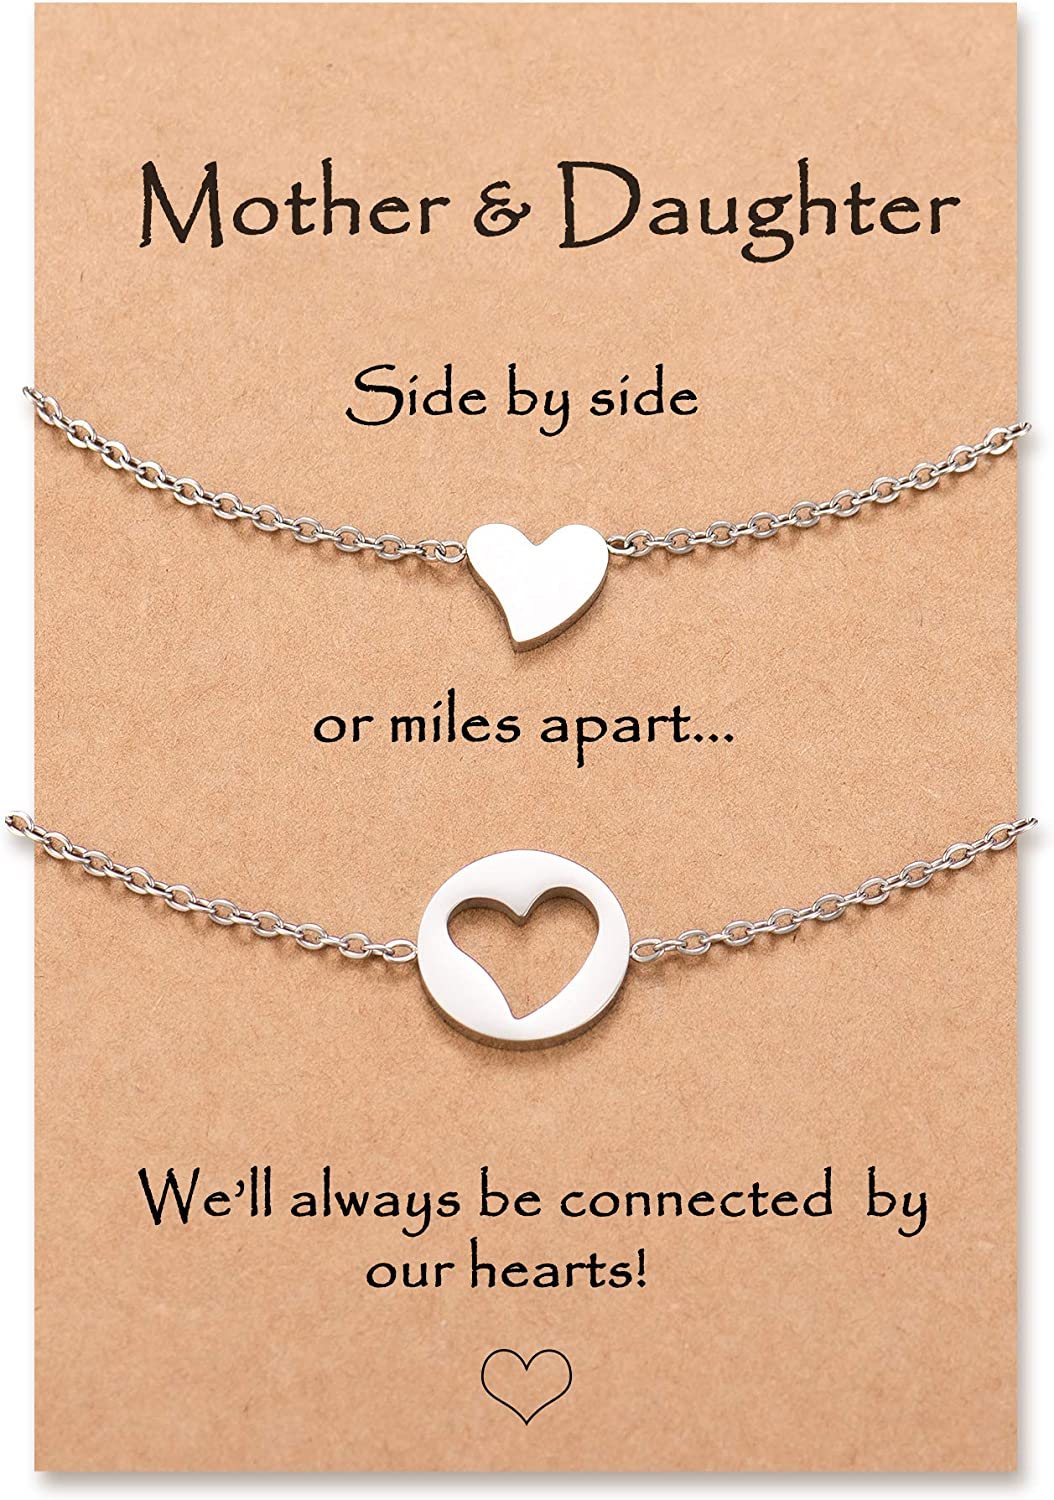 Lanqueen Back to School Gift Mothers Bracelets D New York Mall Daughter wholesale Mother